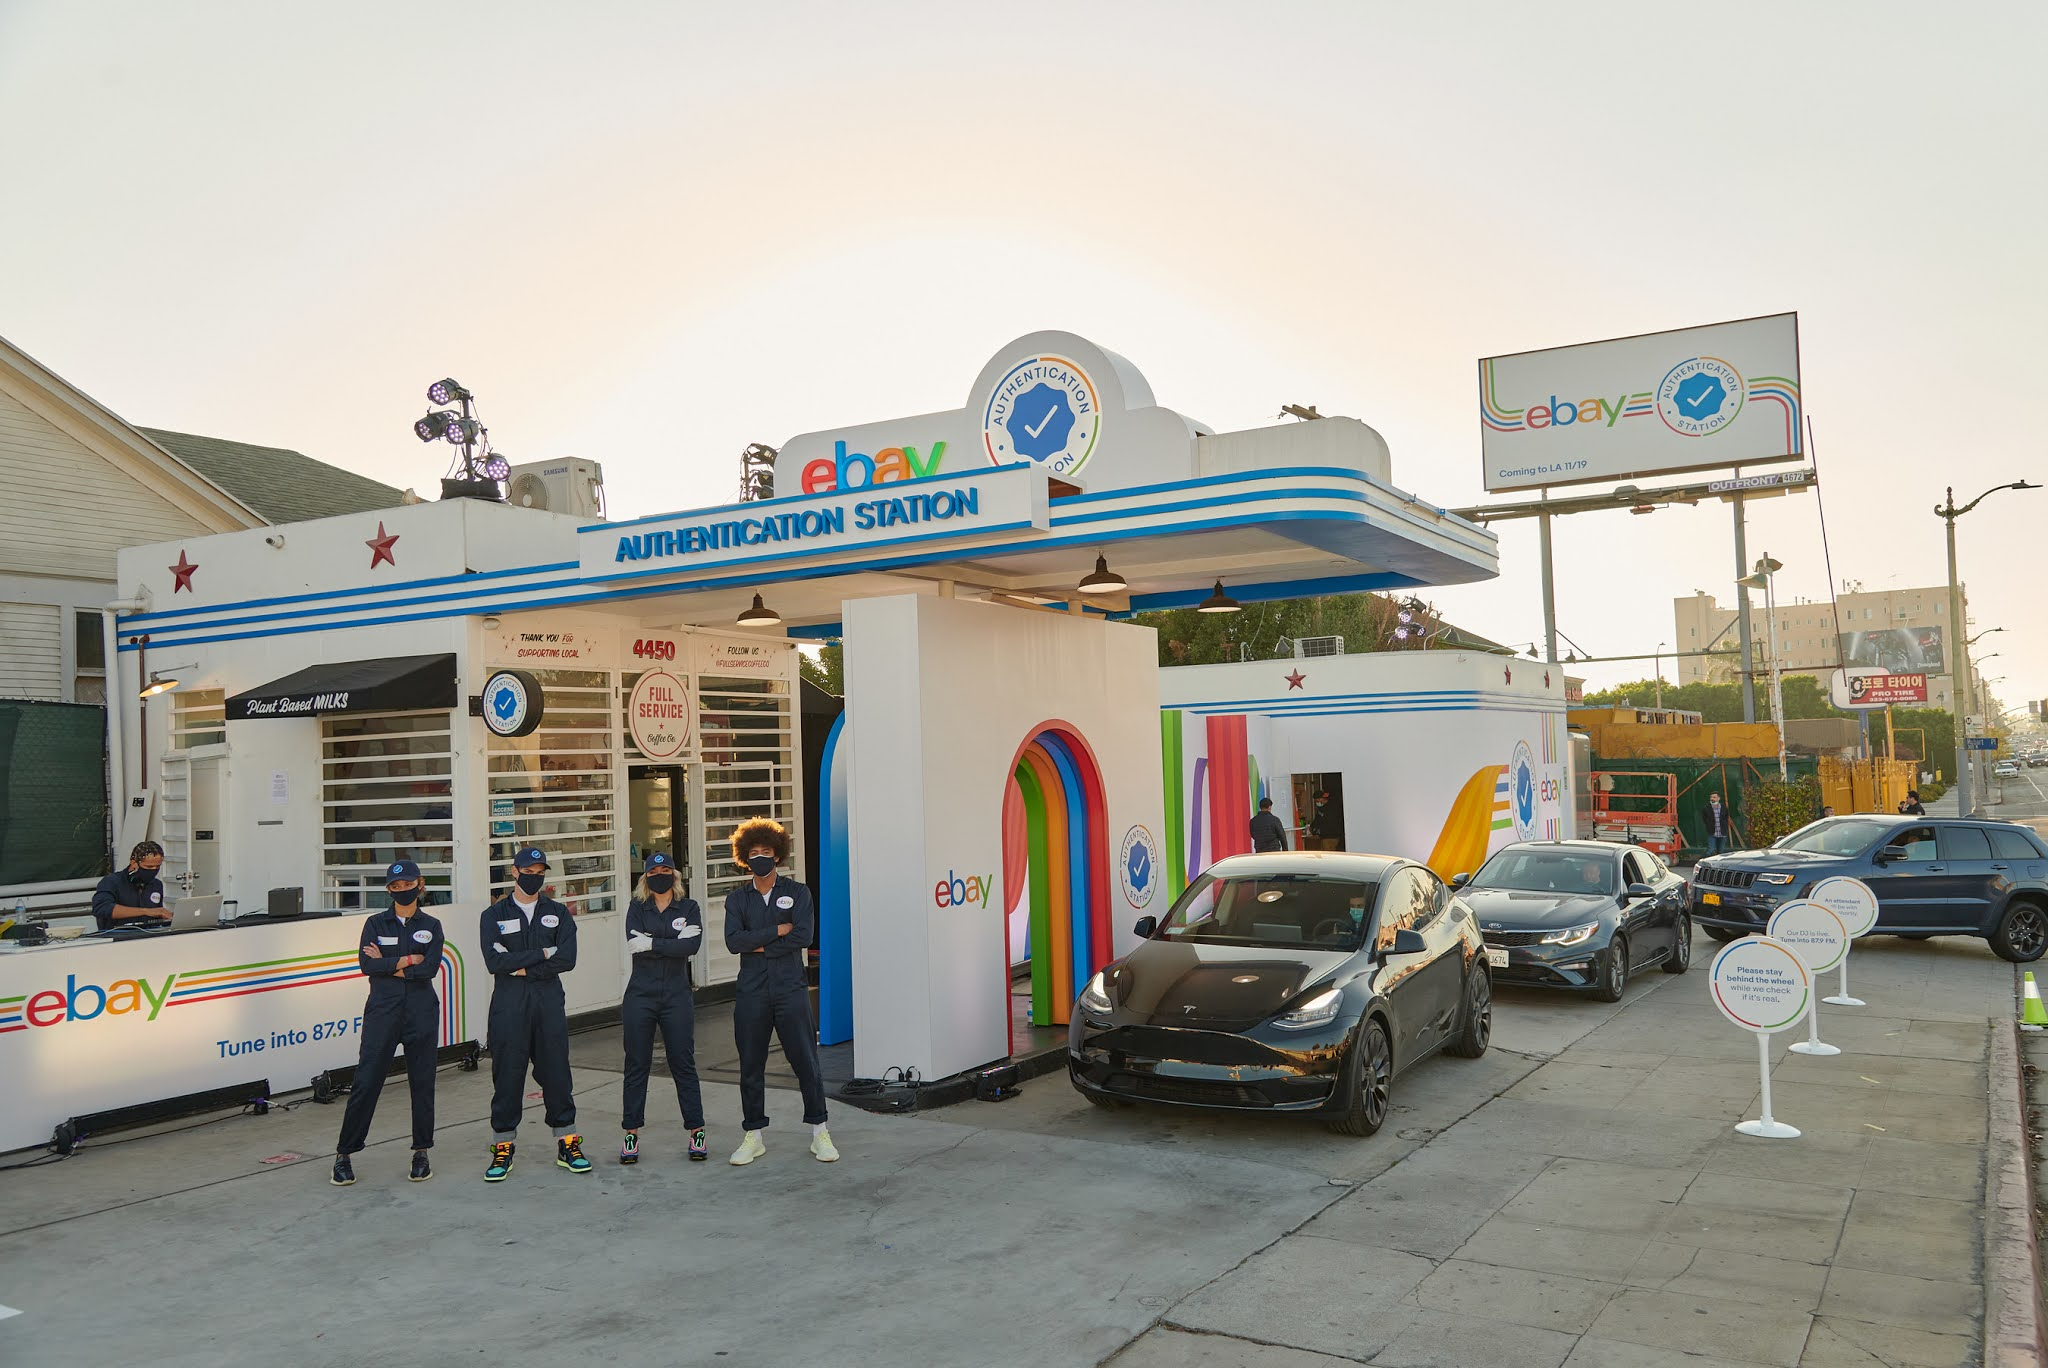 eBay Opens First-Ever Drive-Thru 'Authentication Station' in LA